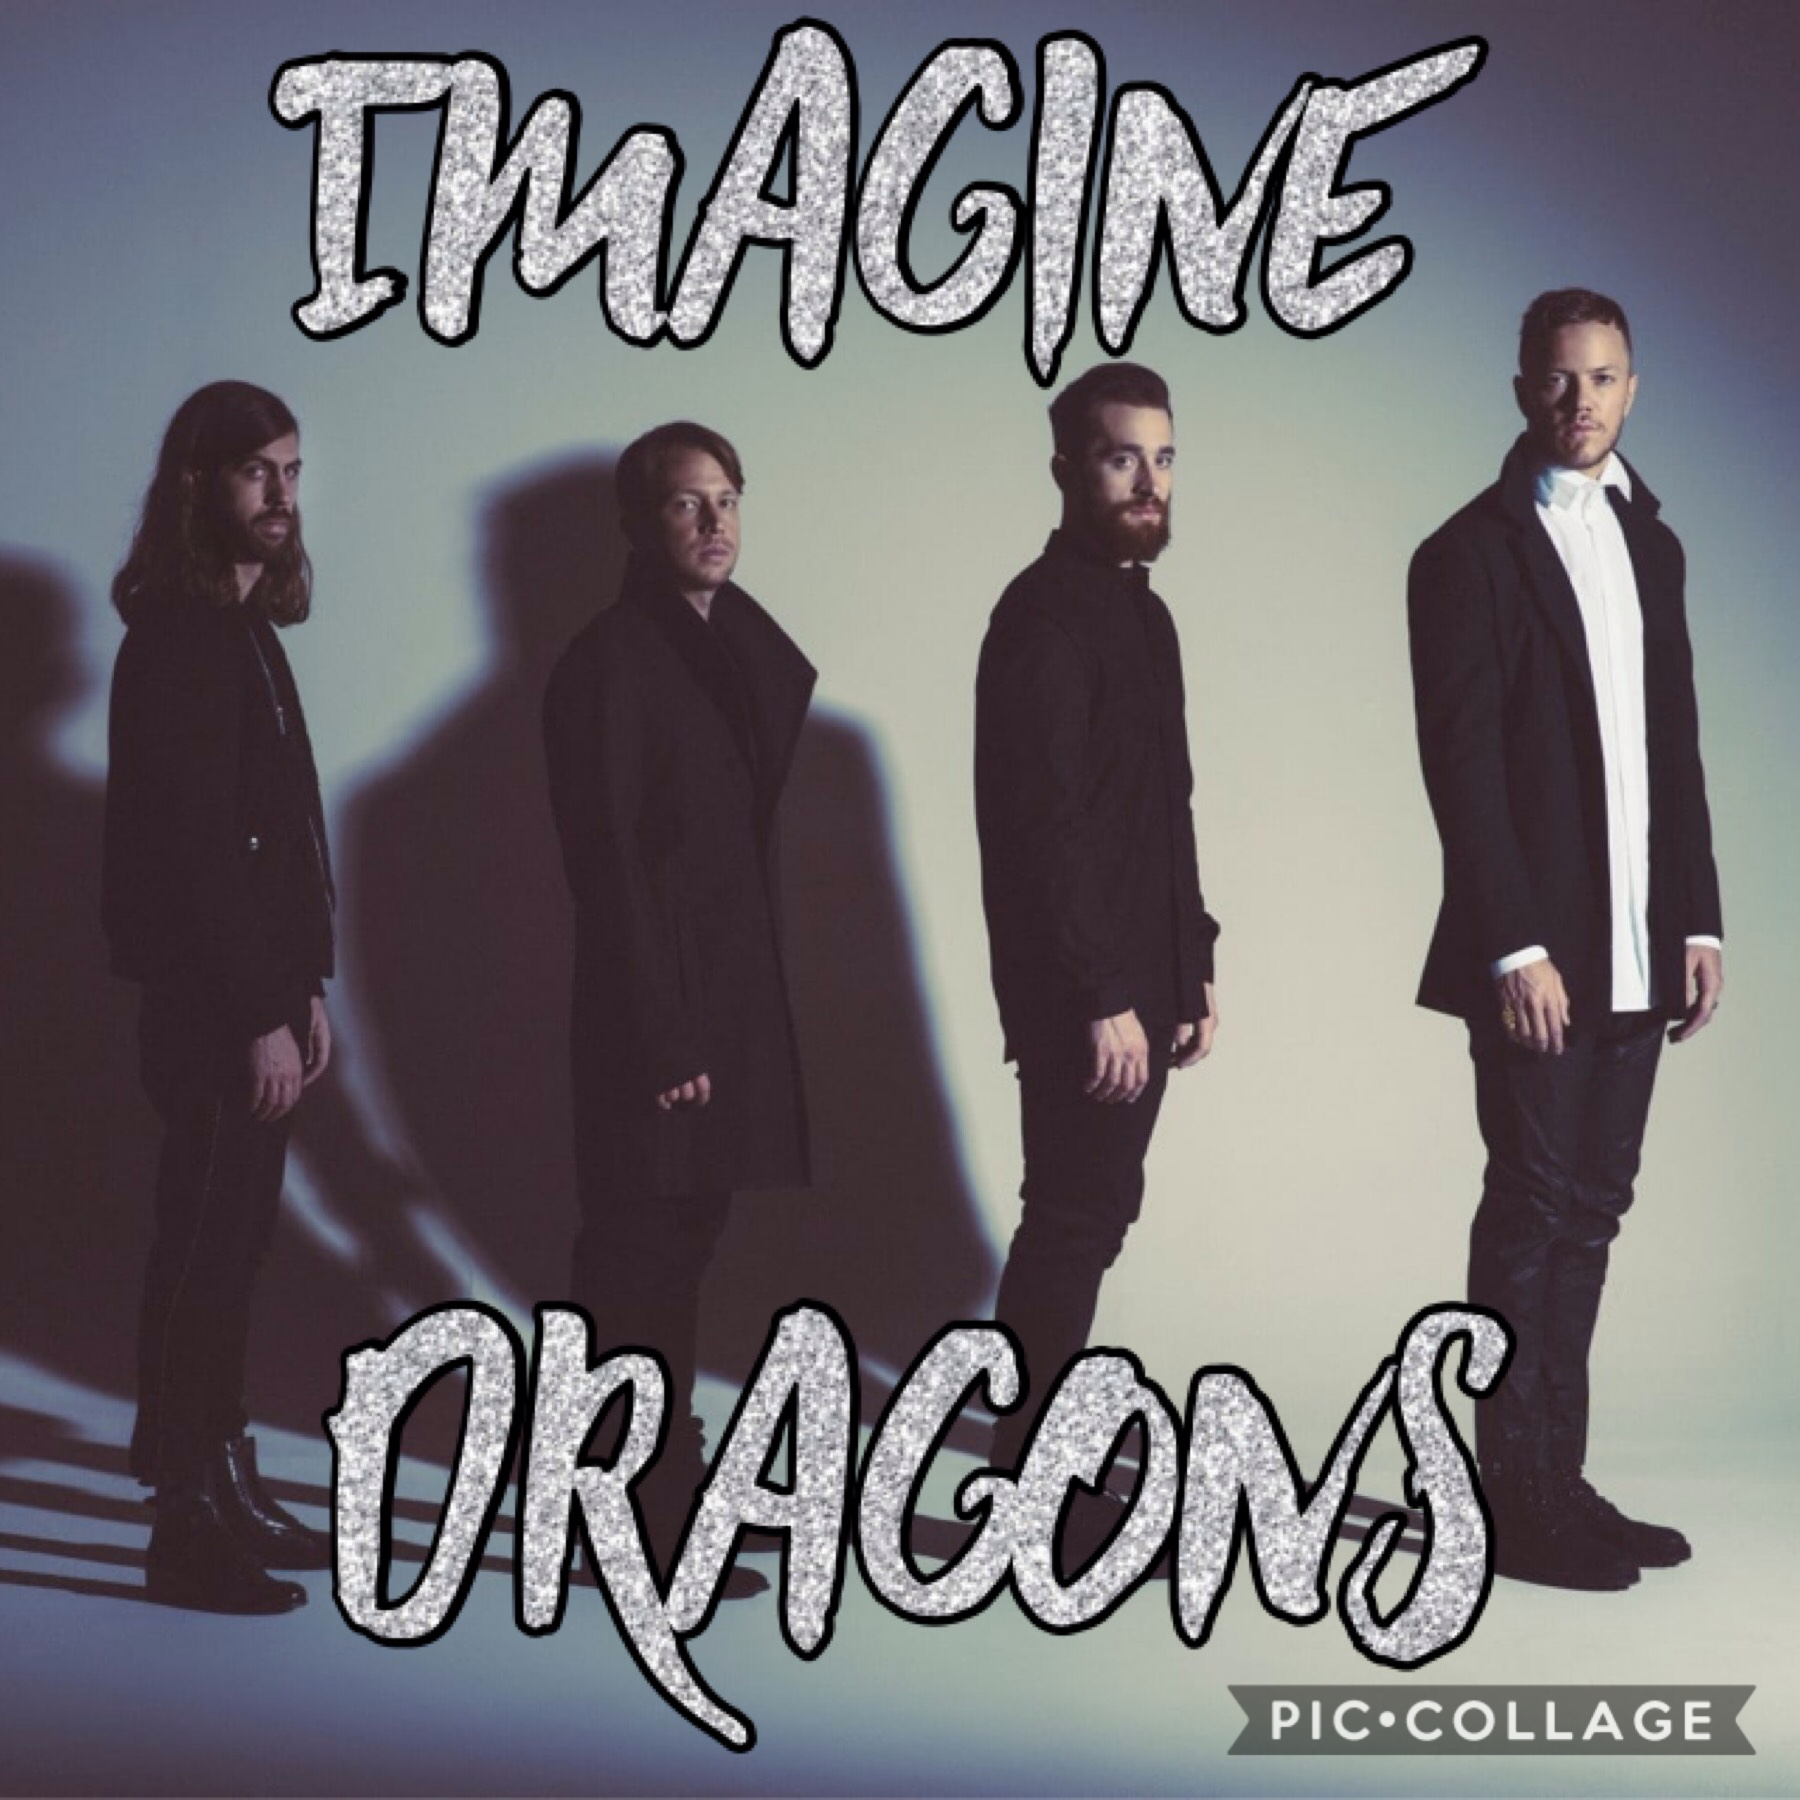 One of my favourite bands